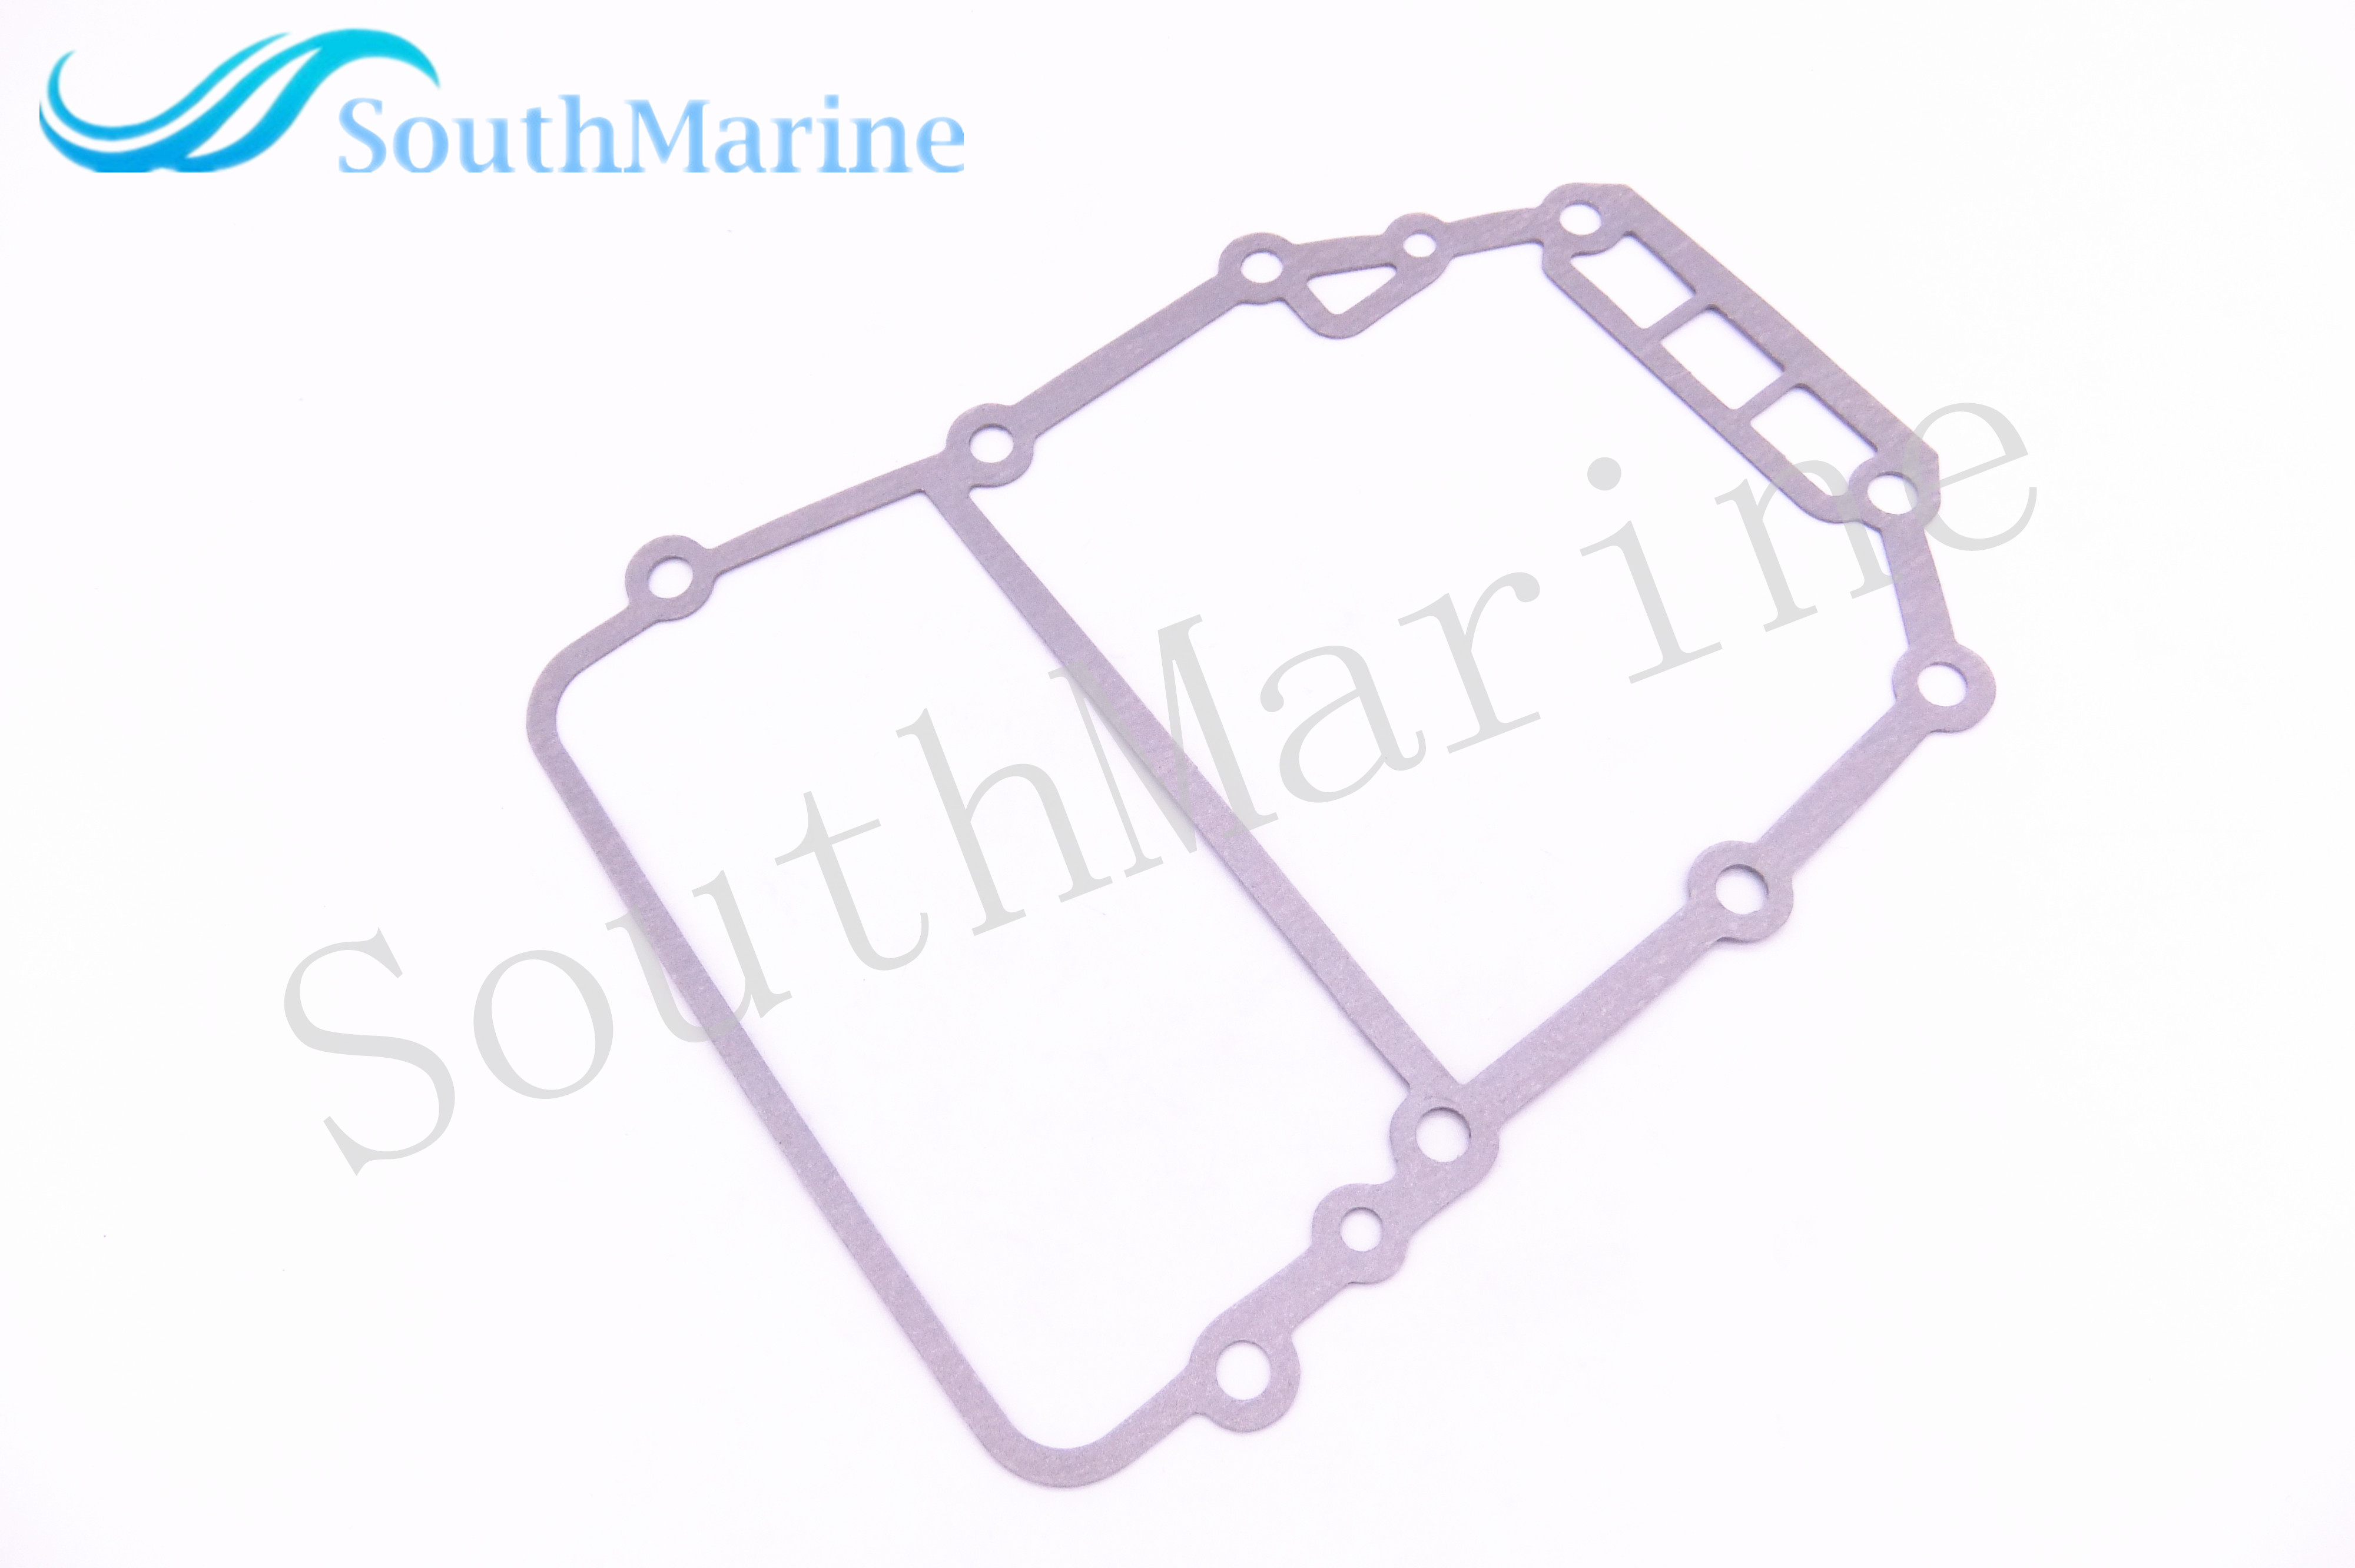 small resolution of outboard engine 11434 94411 gasket under oil seal for suzuki 40hp dt40 dt40c boat motor in boat engine from automobiles motorcycles on aliexpress com